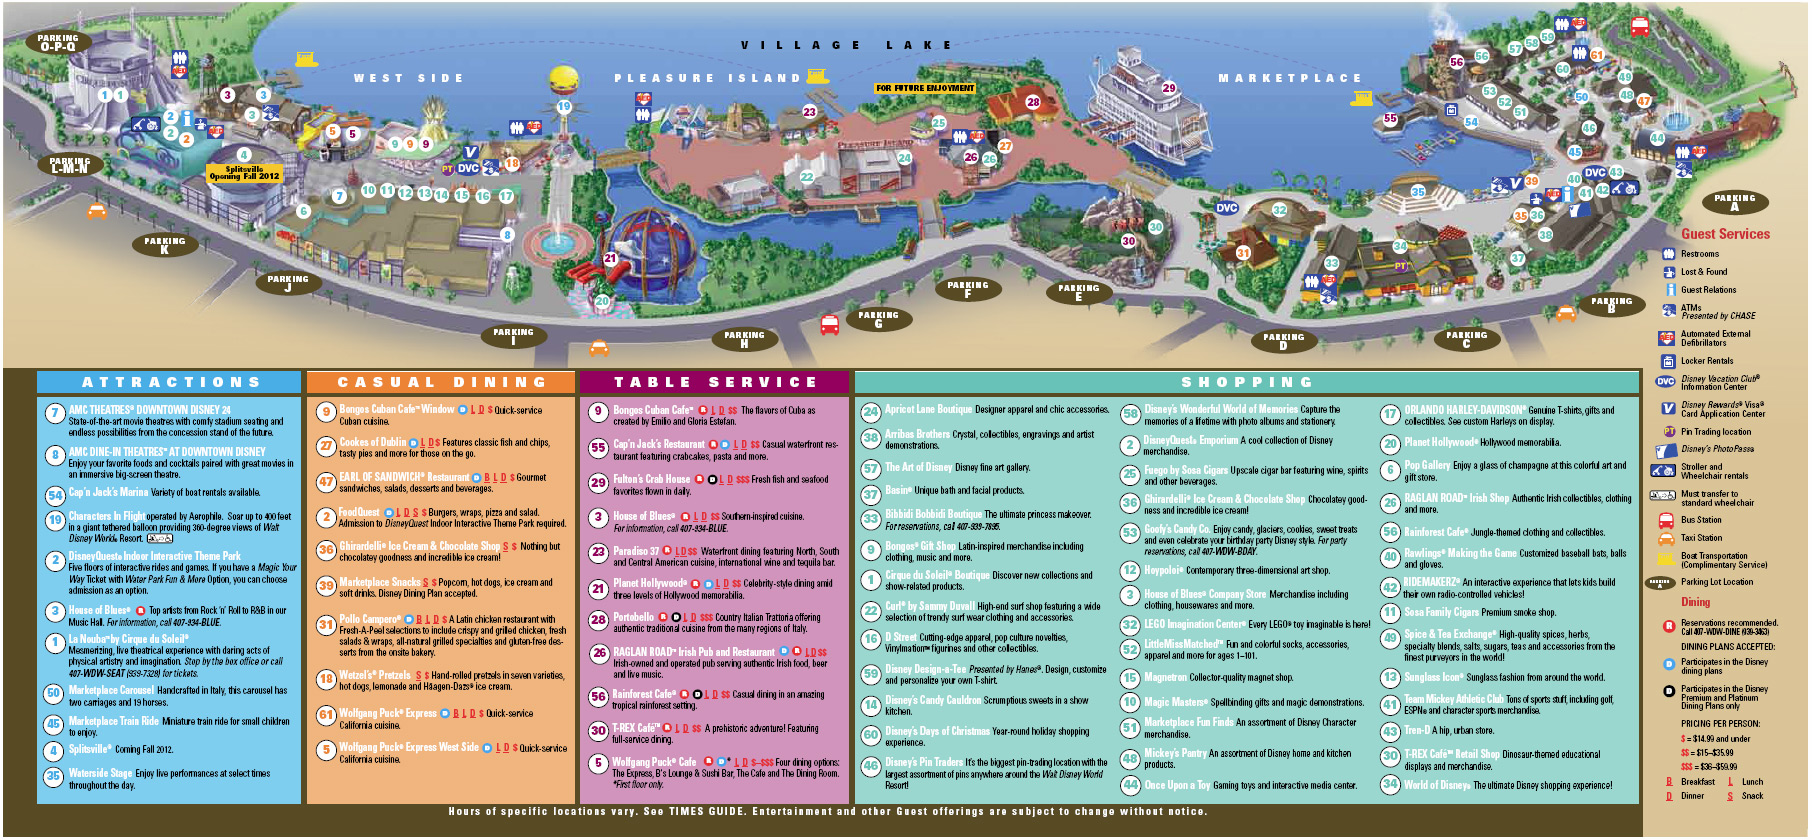 Downtown Disney Map September 2011 - Photo 1 of 1 on